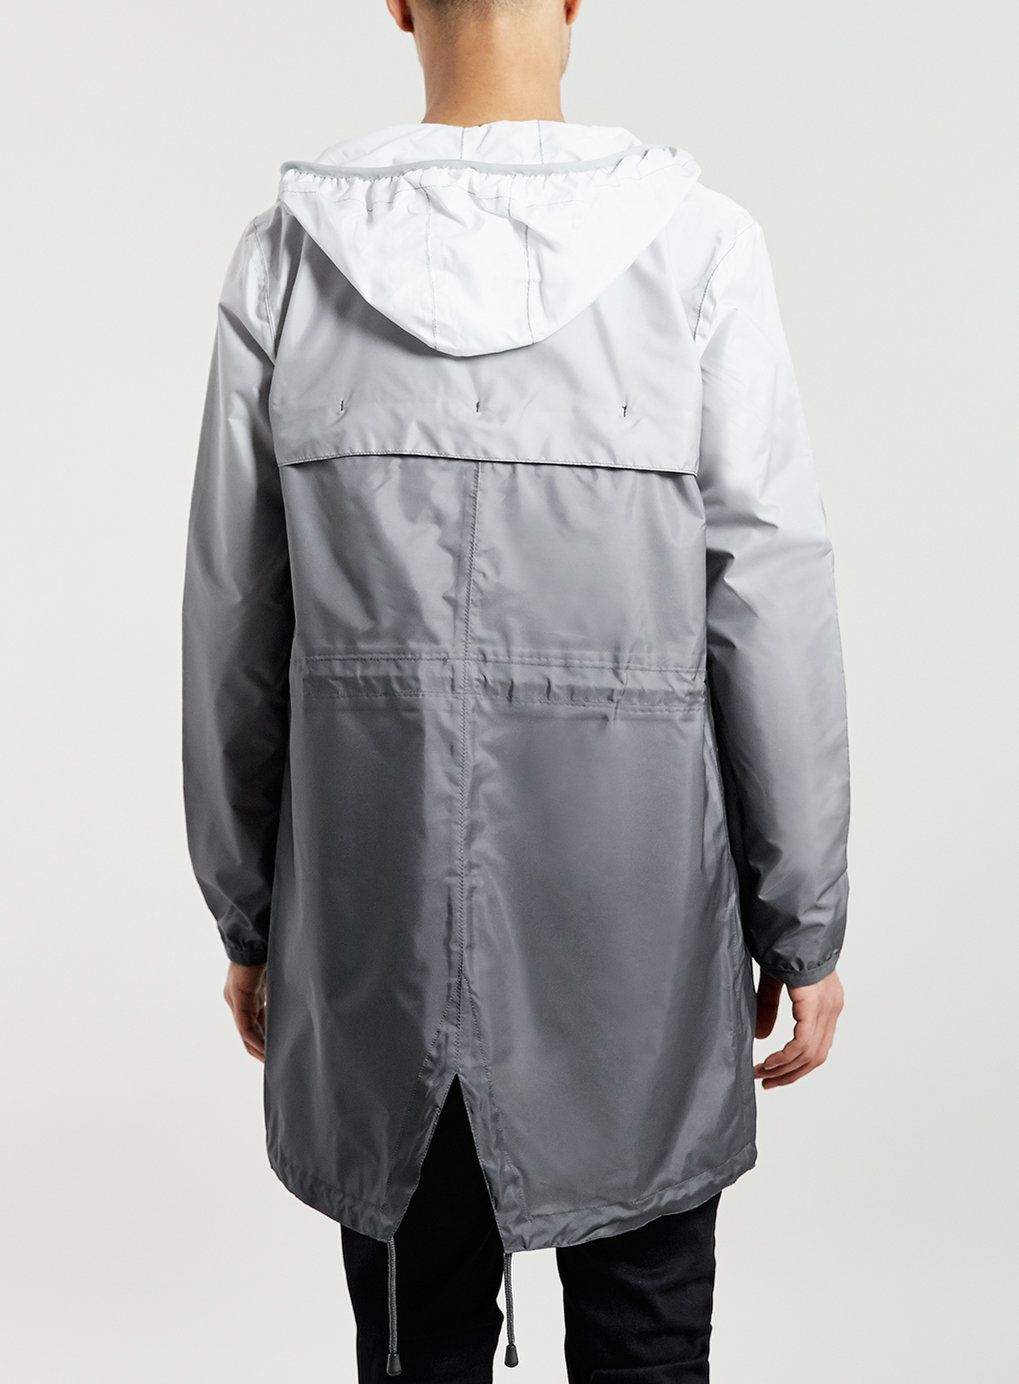 newest ba0b8 c4bbe Pin by Suby Kevi on Outdoor Jacken Herronmode Sale | Clothes ...